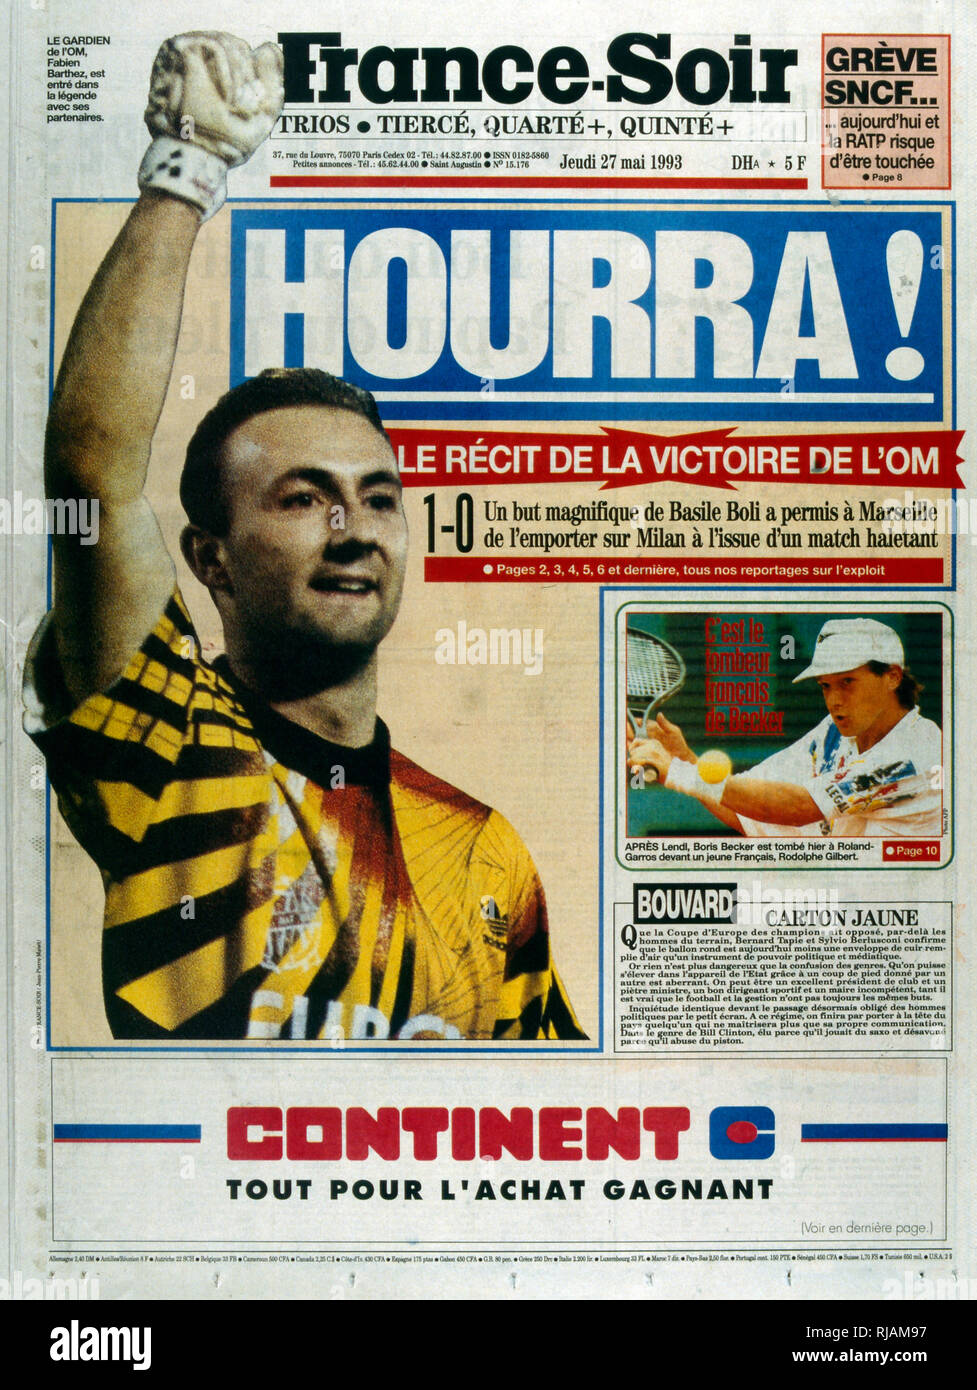 French publication 'France-Soir' reporting the Marseilles Football club winning the UEFA Champions League in 1993. The highlight of the Marseilles football club's history was winning the new format UEFA Champions League in 1993. Basile Boli scored the only goal against Italy's Milan in the final held in Munich's Olympic Stadium. This triumph, however, was followed by a decade of decline. In 1994, due to financial irregularities and a match fixing scandal involving then president Bernard Tapie - Stock Image